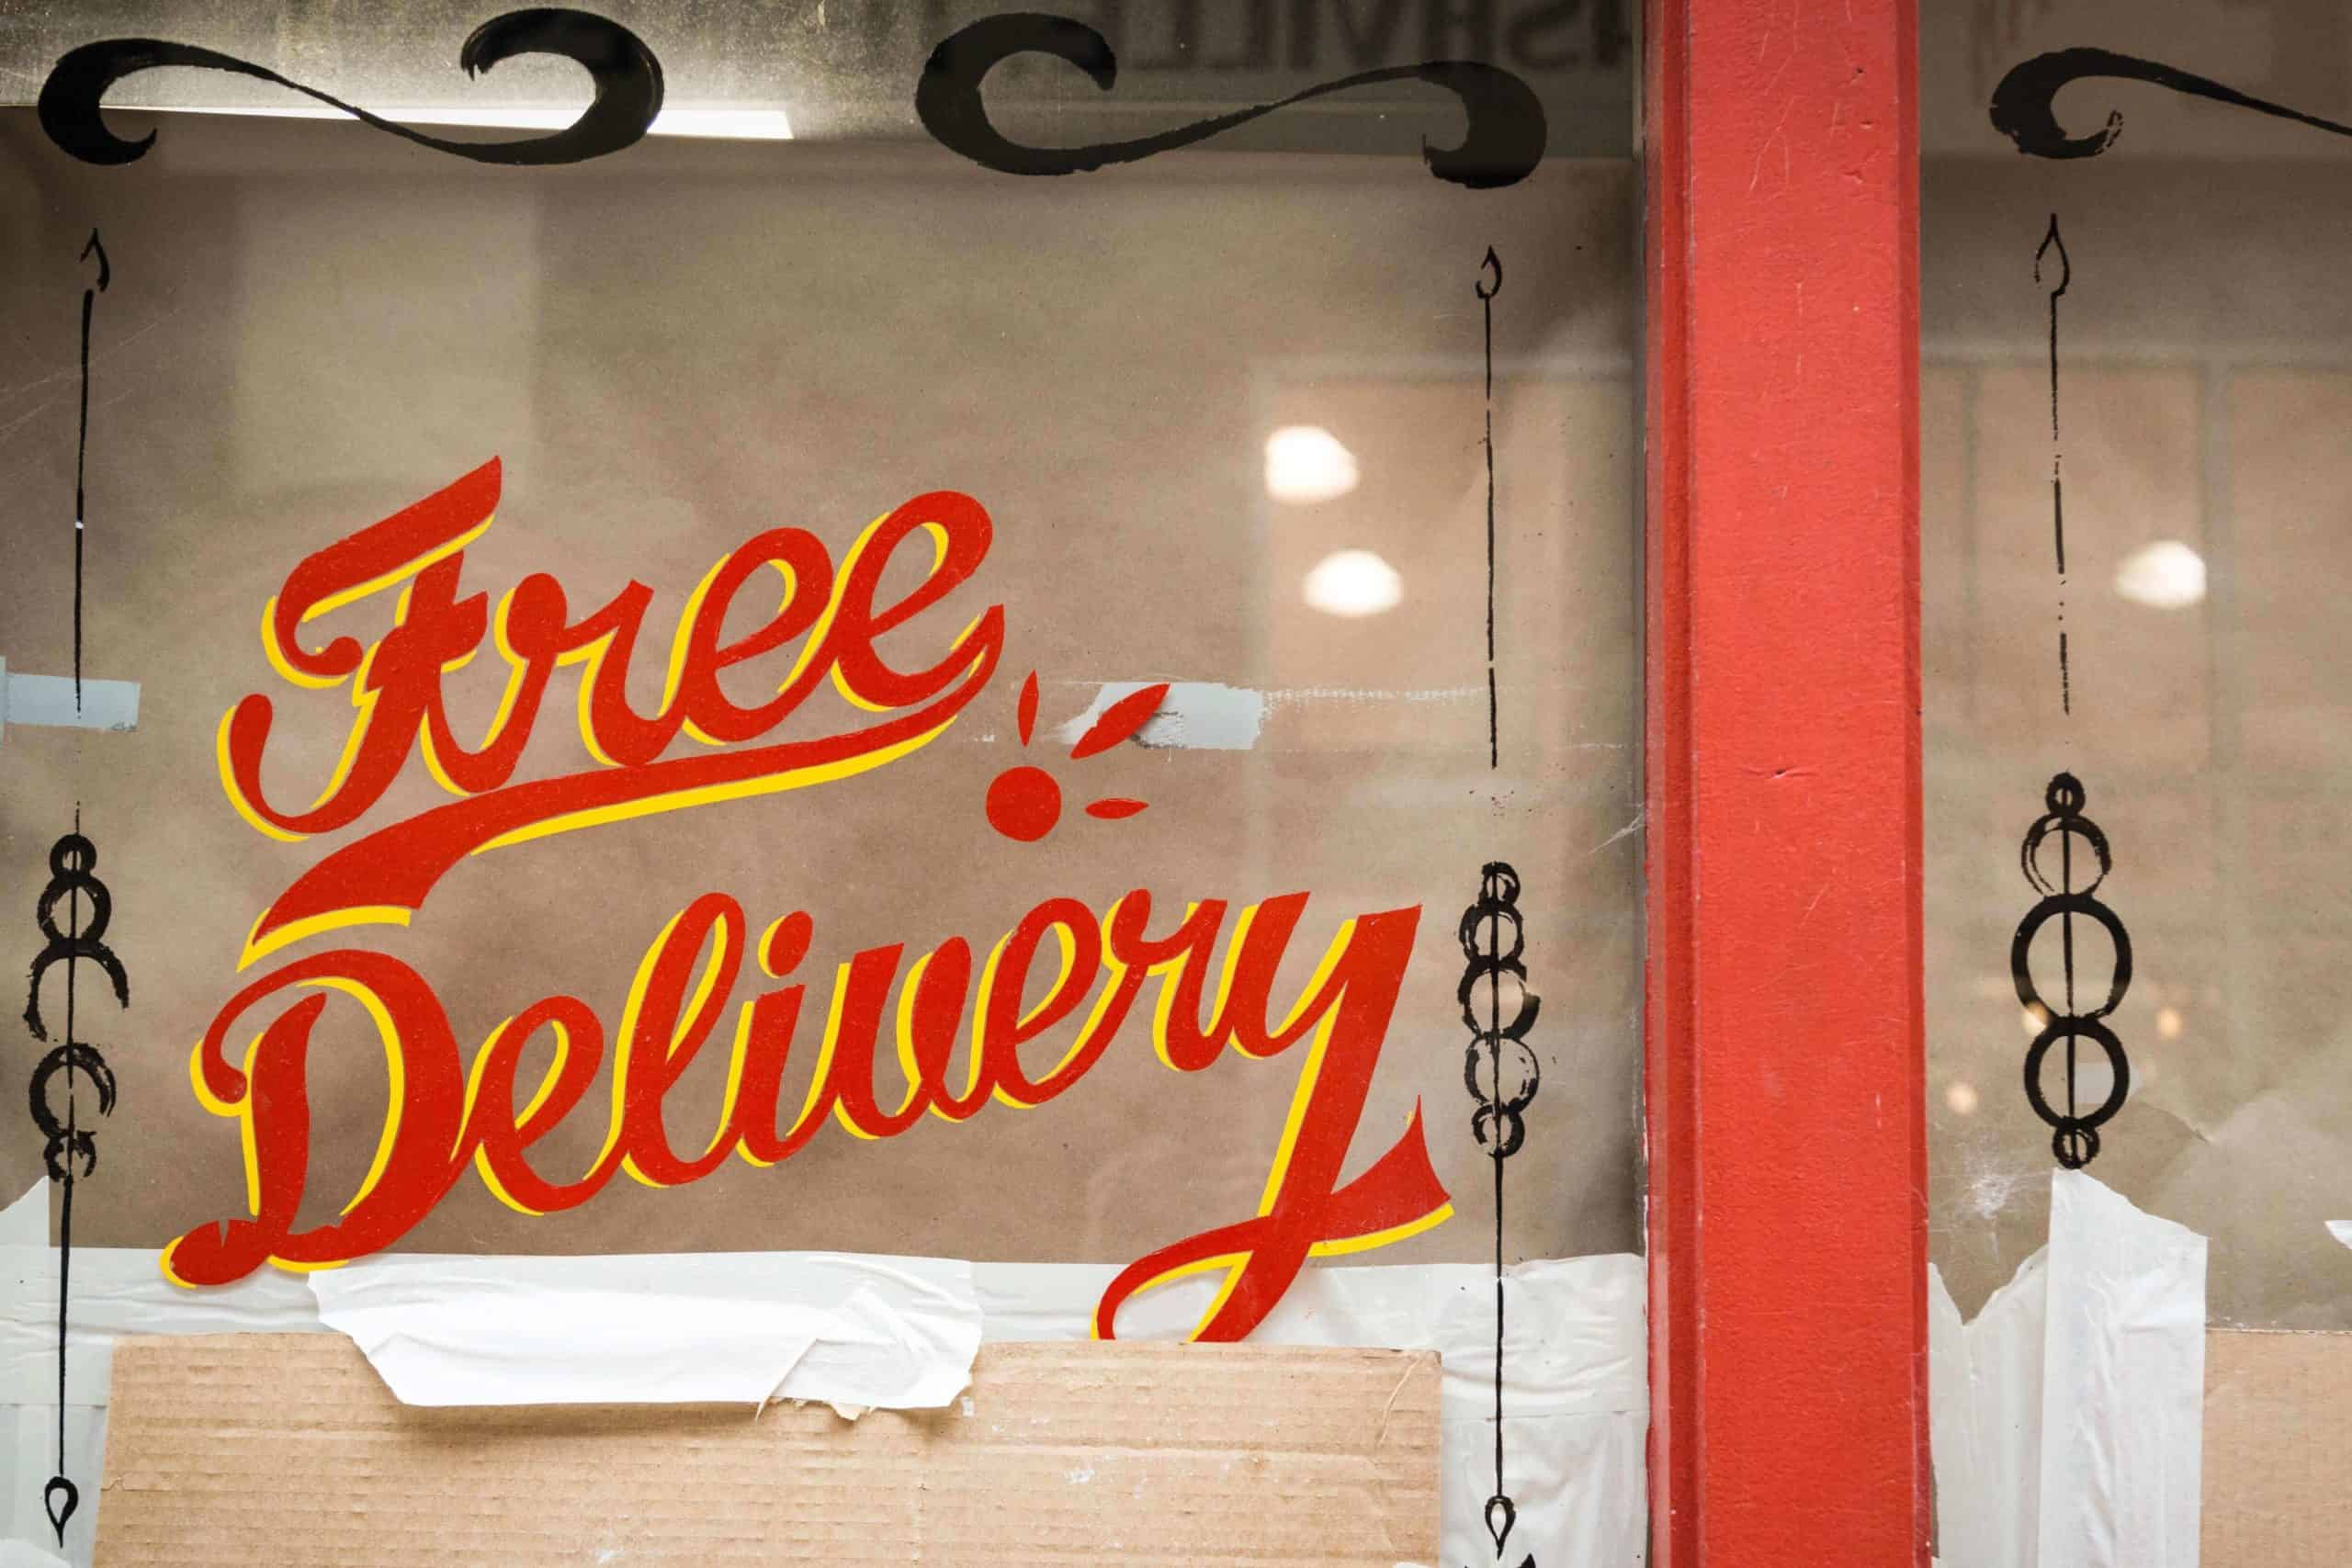 The state of online ordering